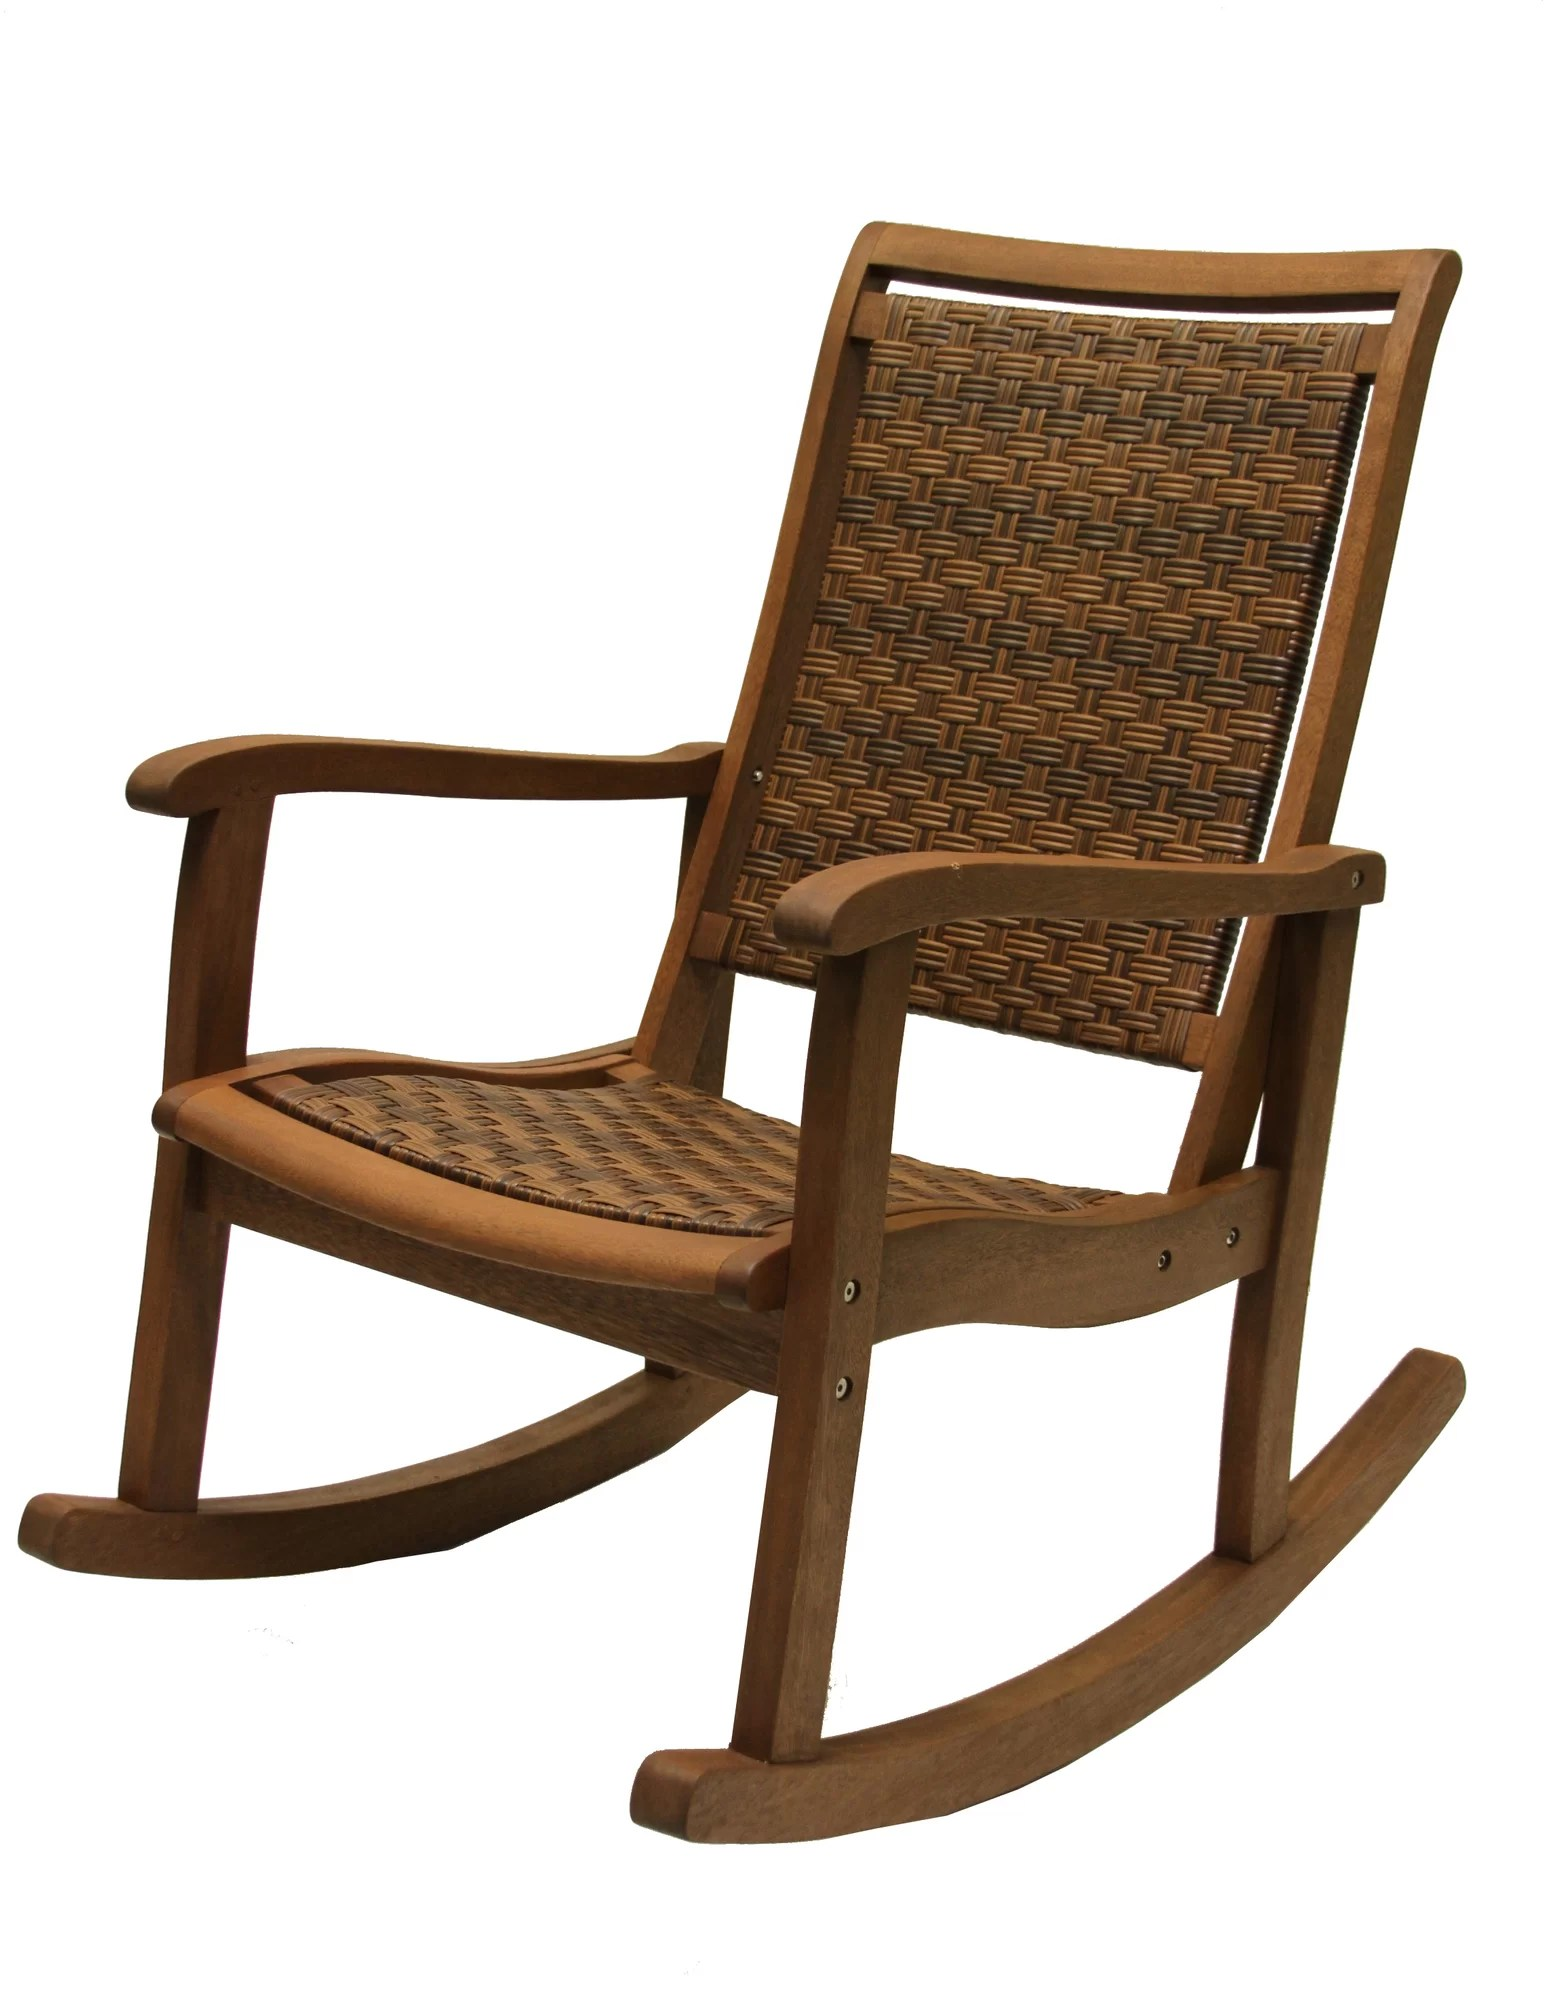 resin patio chairs ergonomic chair johor bahru outdoor interiors wicker and eucalyptus rocker